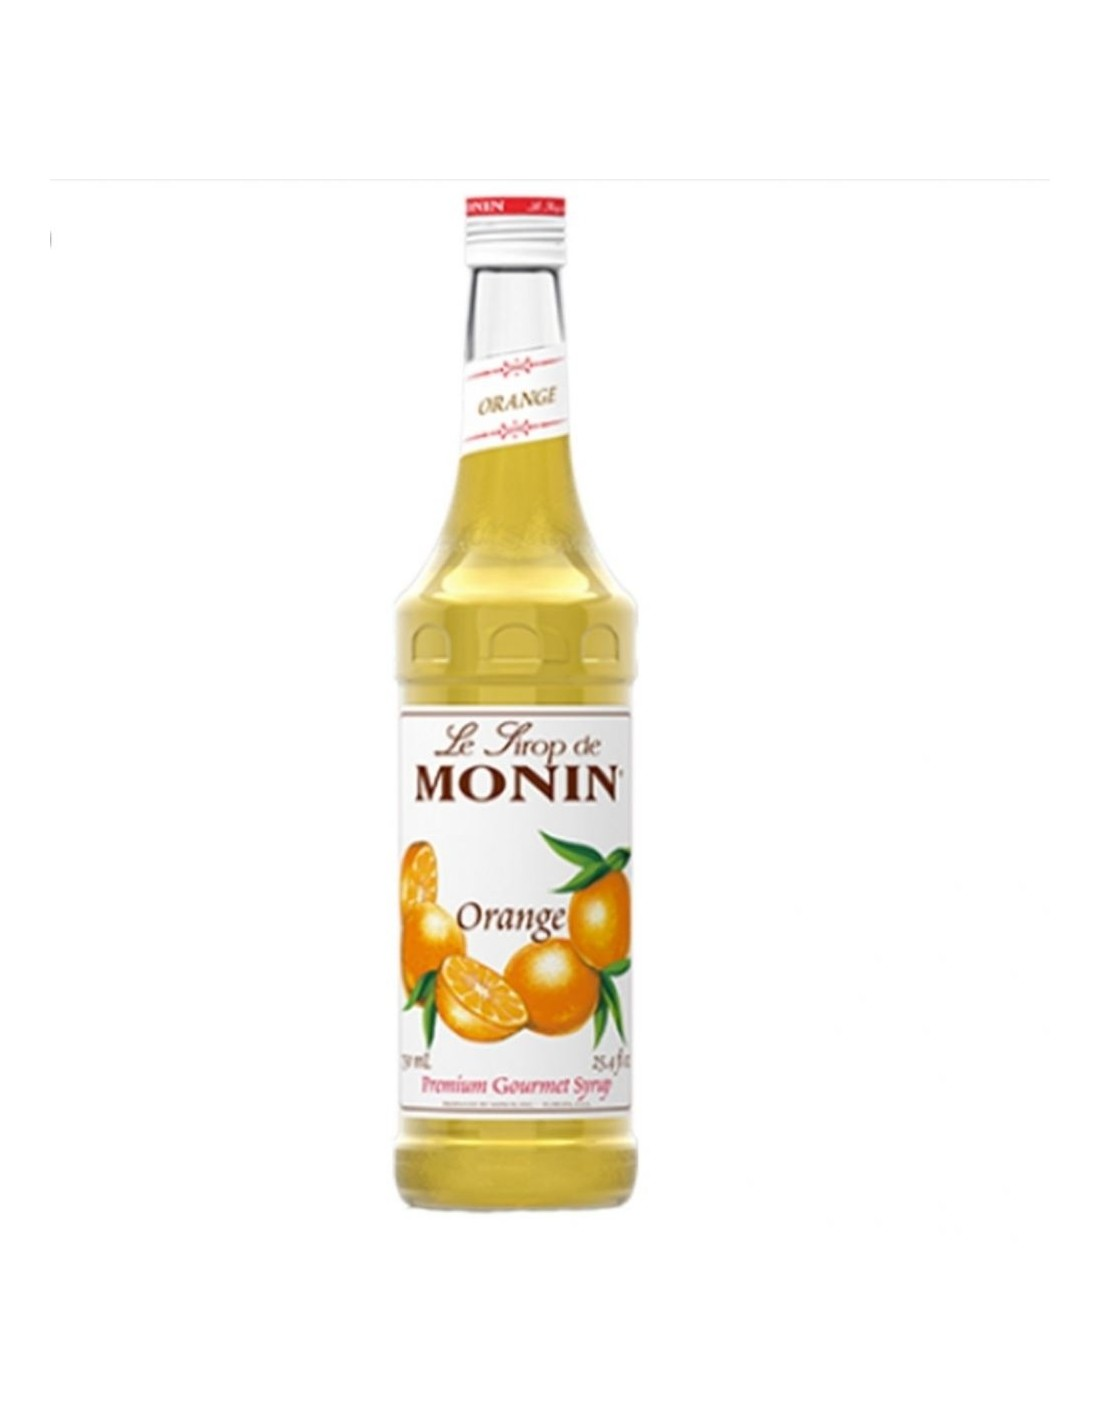 Sirop cocktail Monin Orange, 0.7L, Franta